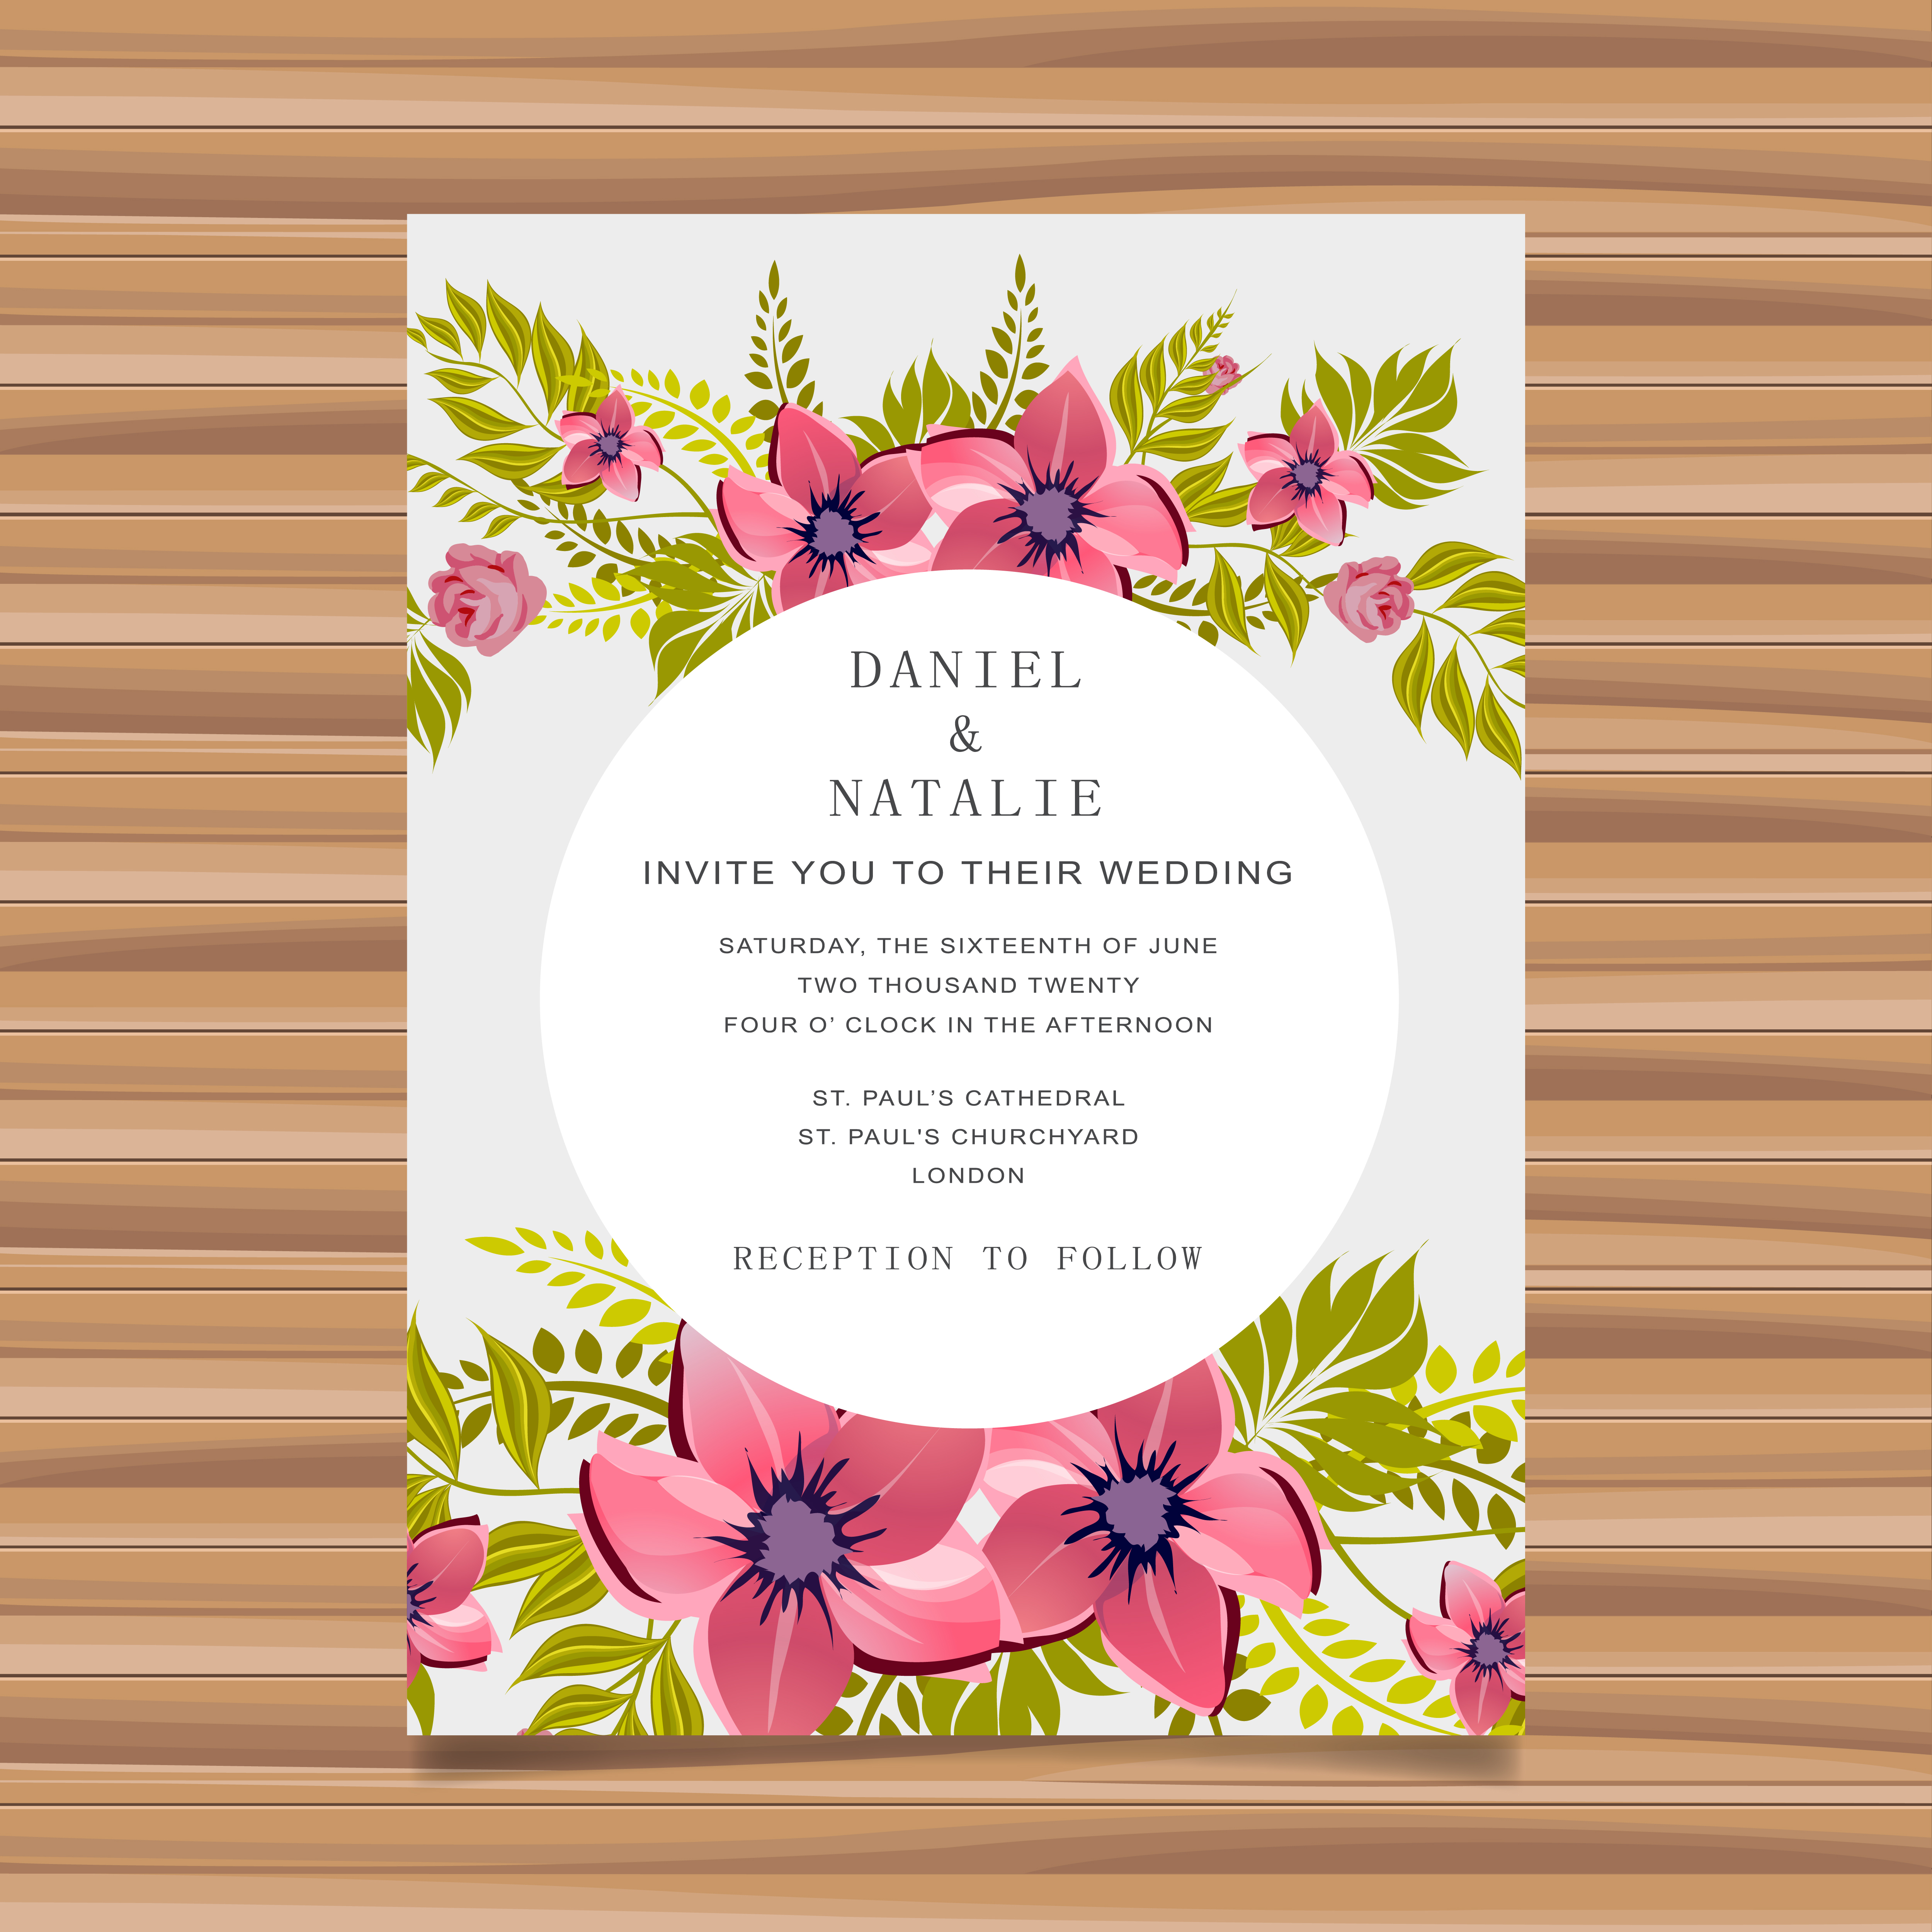 wedding card invitation with flower decoration  download